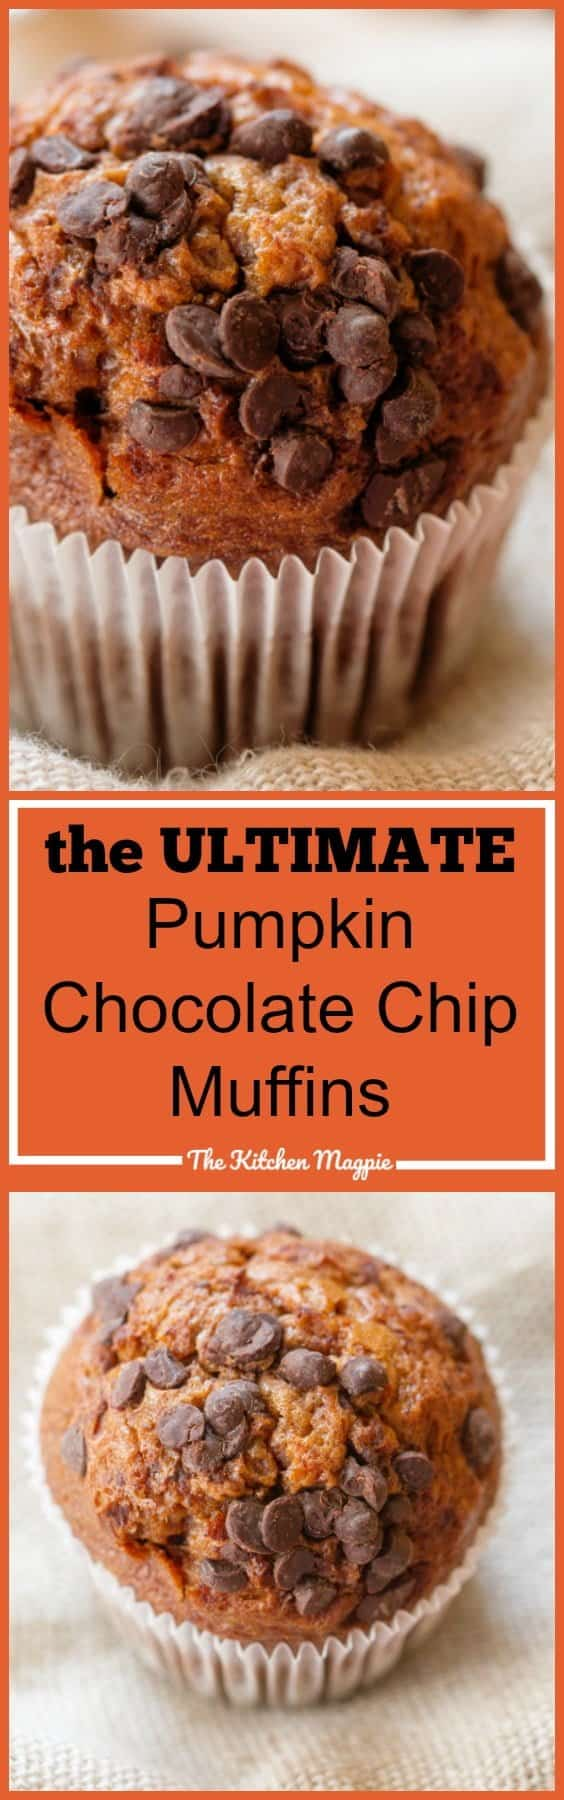 The Ultimate Chocolate Chip Pumpkin Muffins from @kitchenmagpie